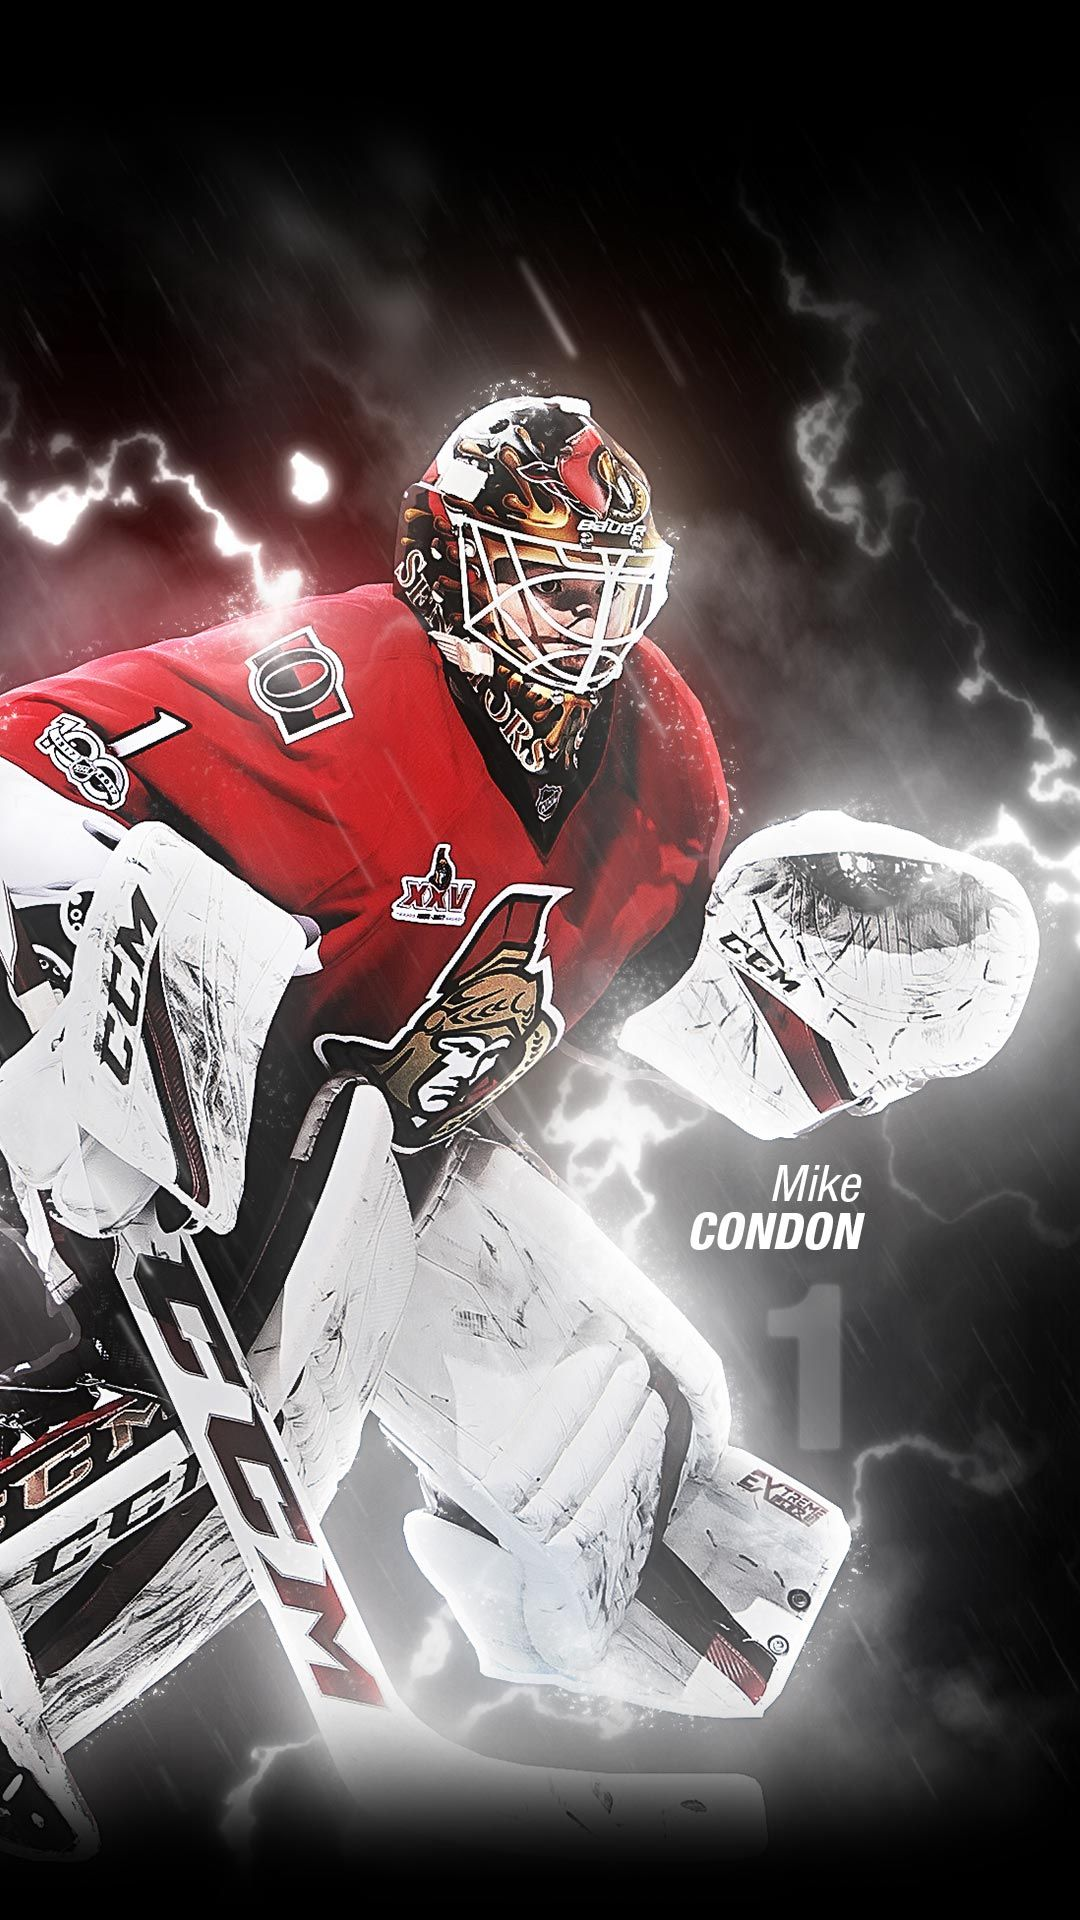 1080x1920 Wallpapers and backgrounds | Ottawa Senators